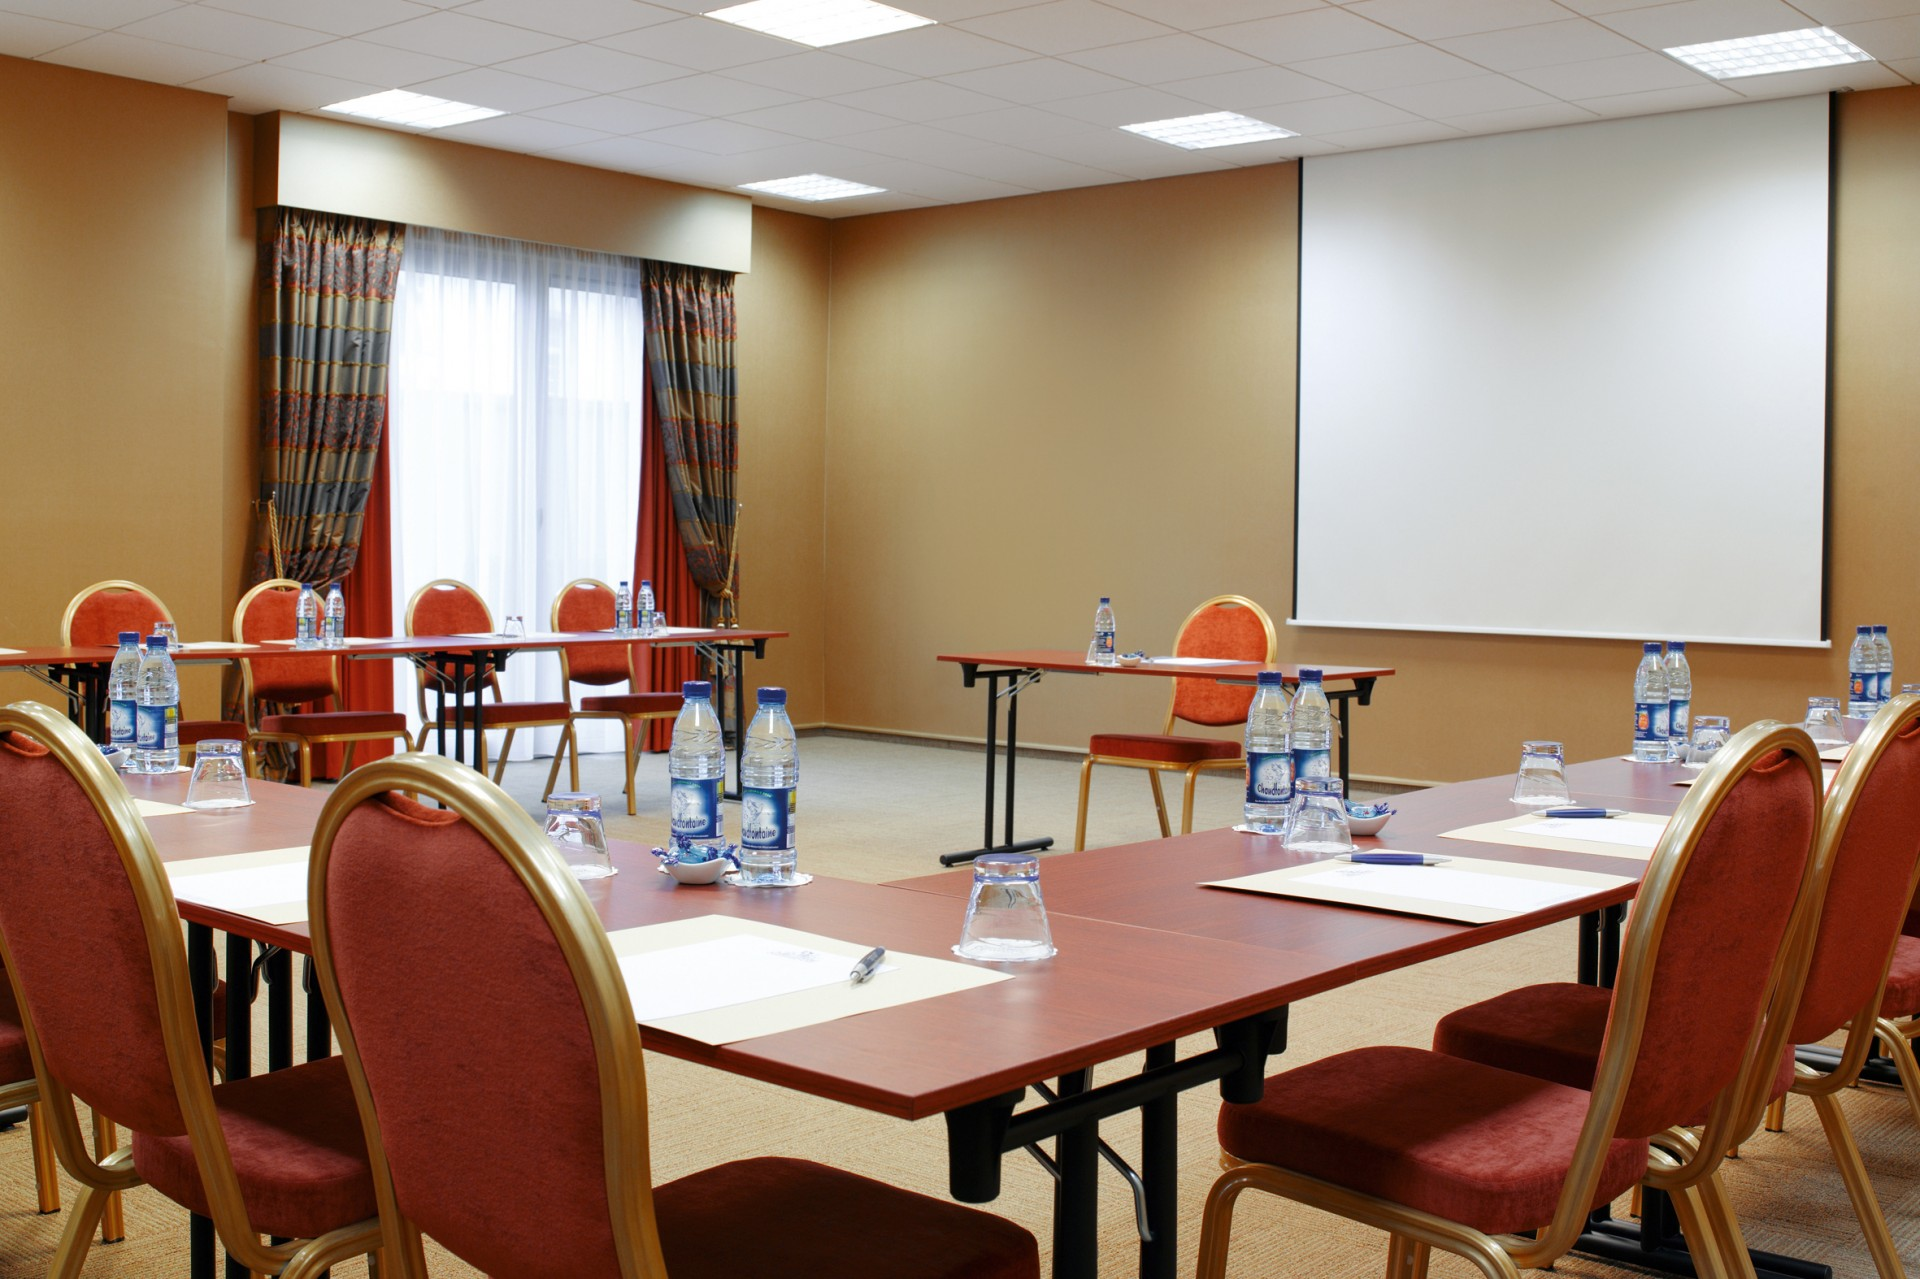 Château des Thermes in Chaudfontaine - Seminar rooms